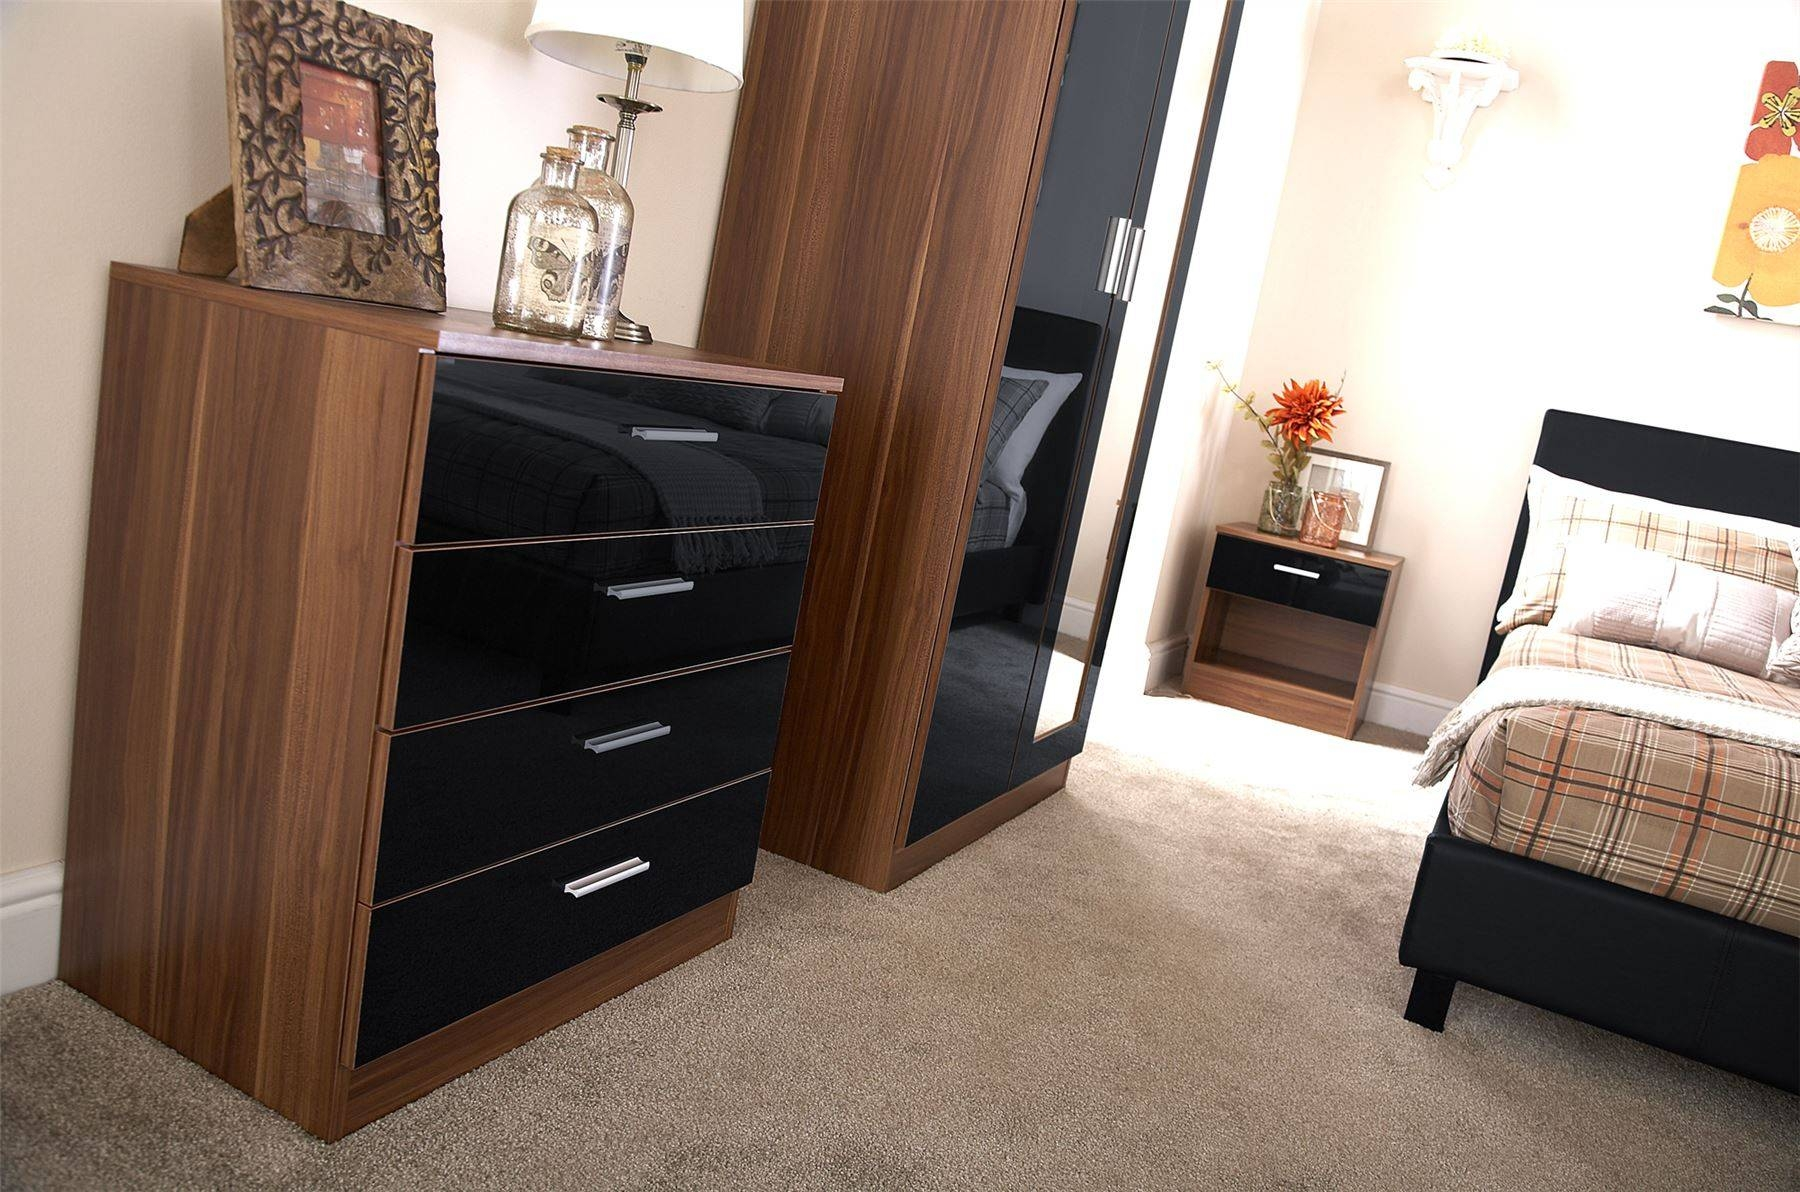 Ikea Bedroom Storage Black Furniture Sets Full Best Ideas High within Cheap Black Gloss Wardrobes (Image 7 of 15)